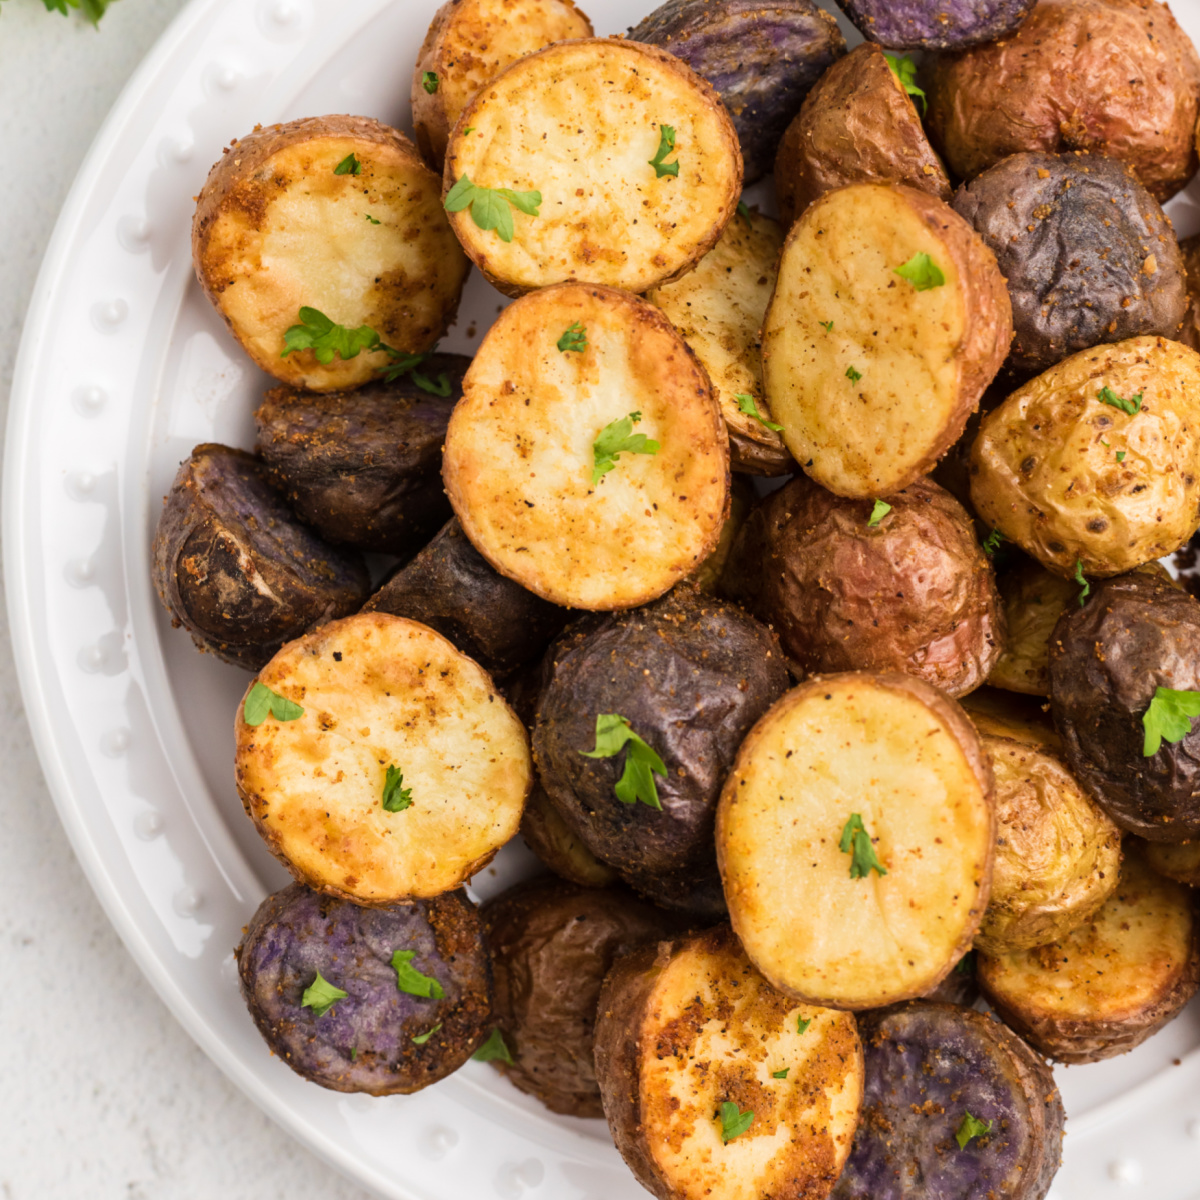 air fryer roasted potatoes seasoned and garnished with fresh parsley.